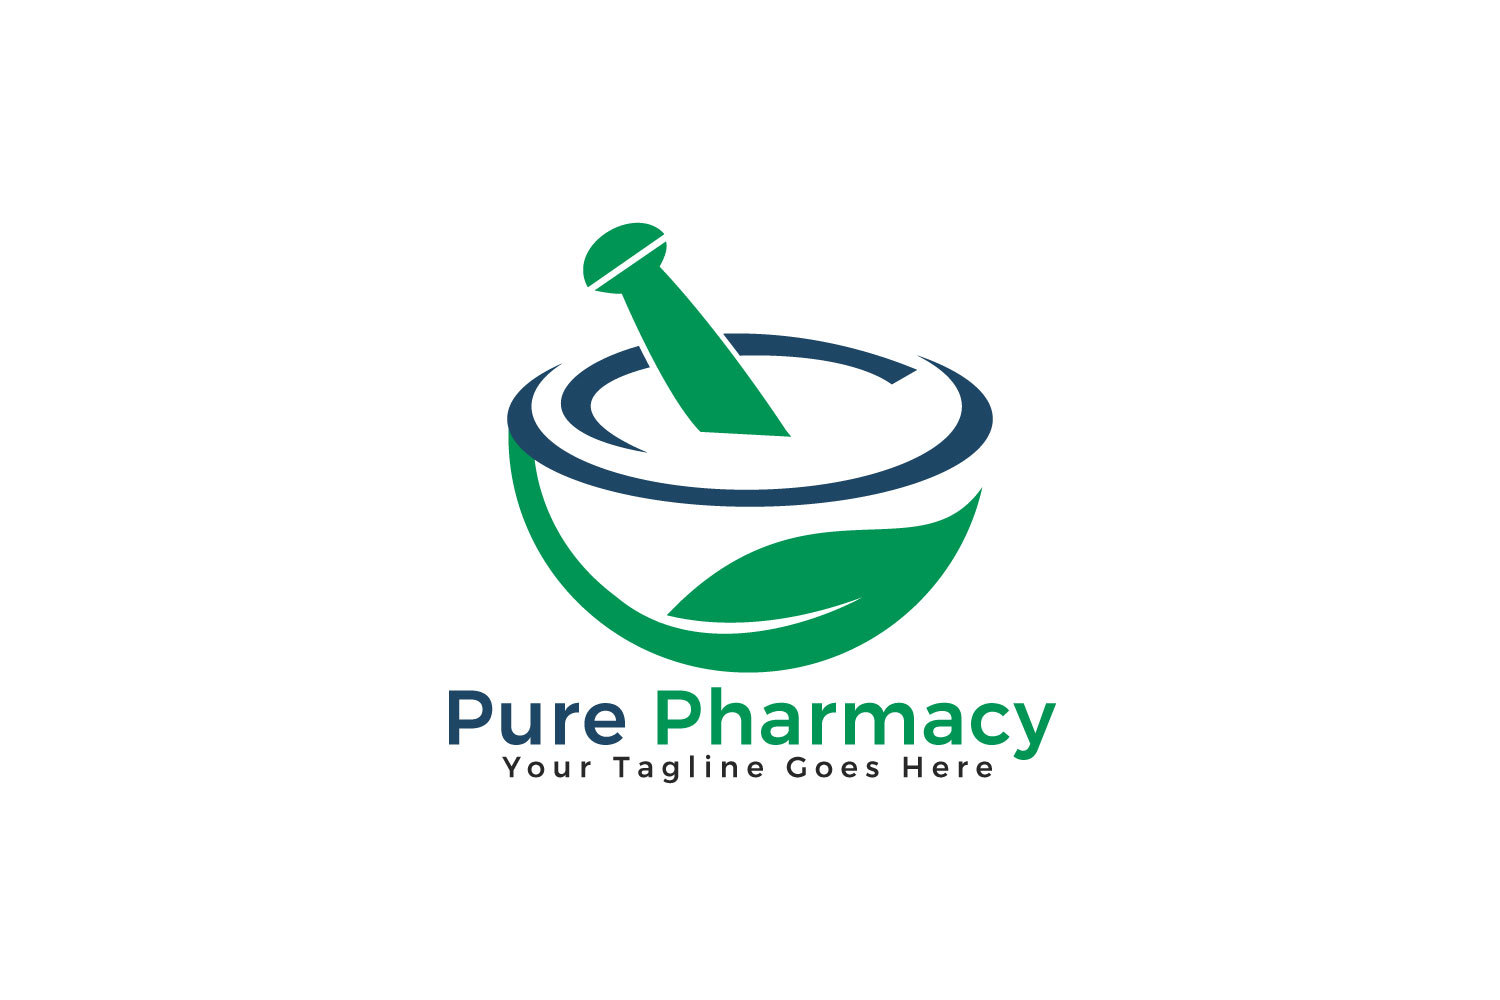 Pure Pharmacy Vector Logo Design. example image 1